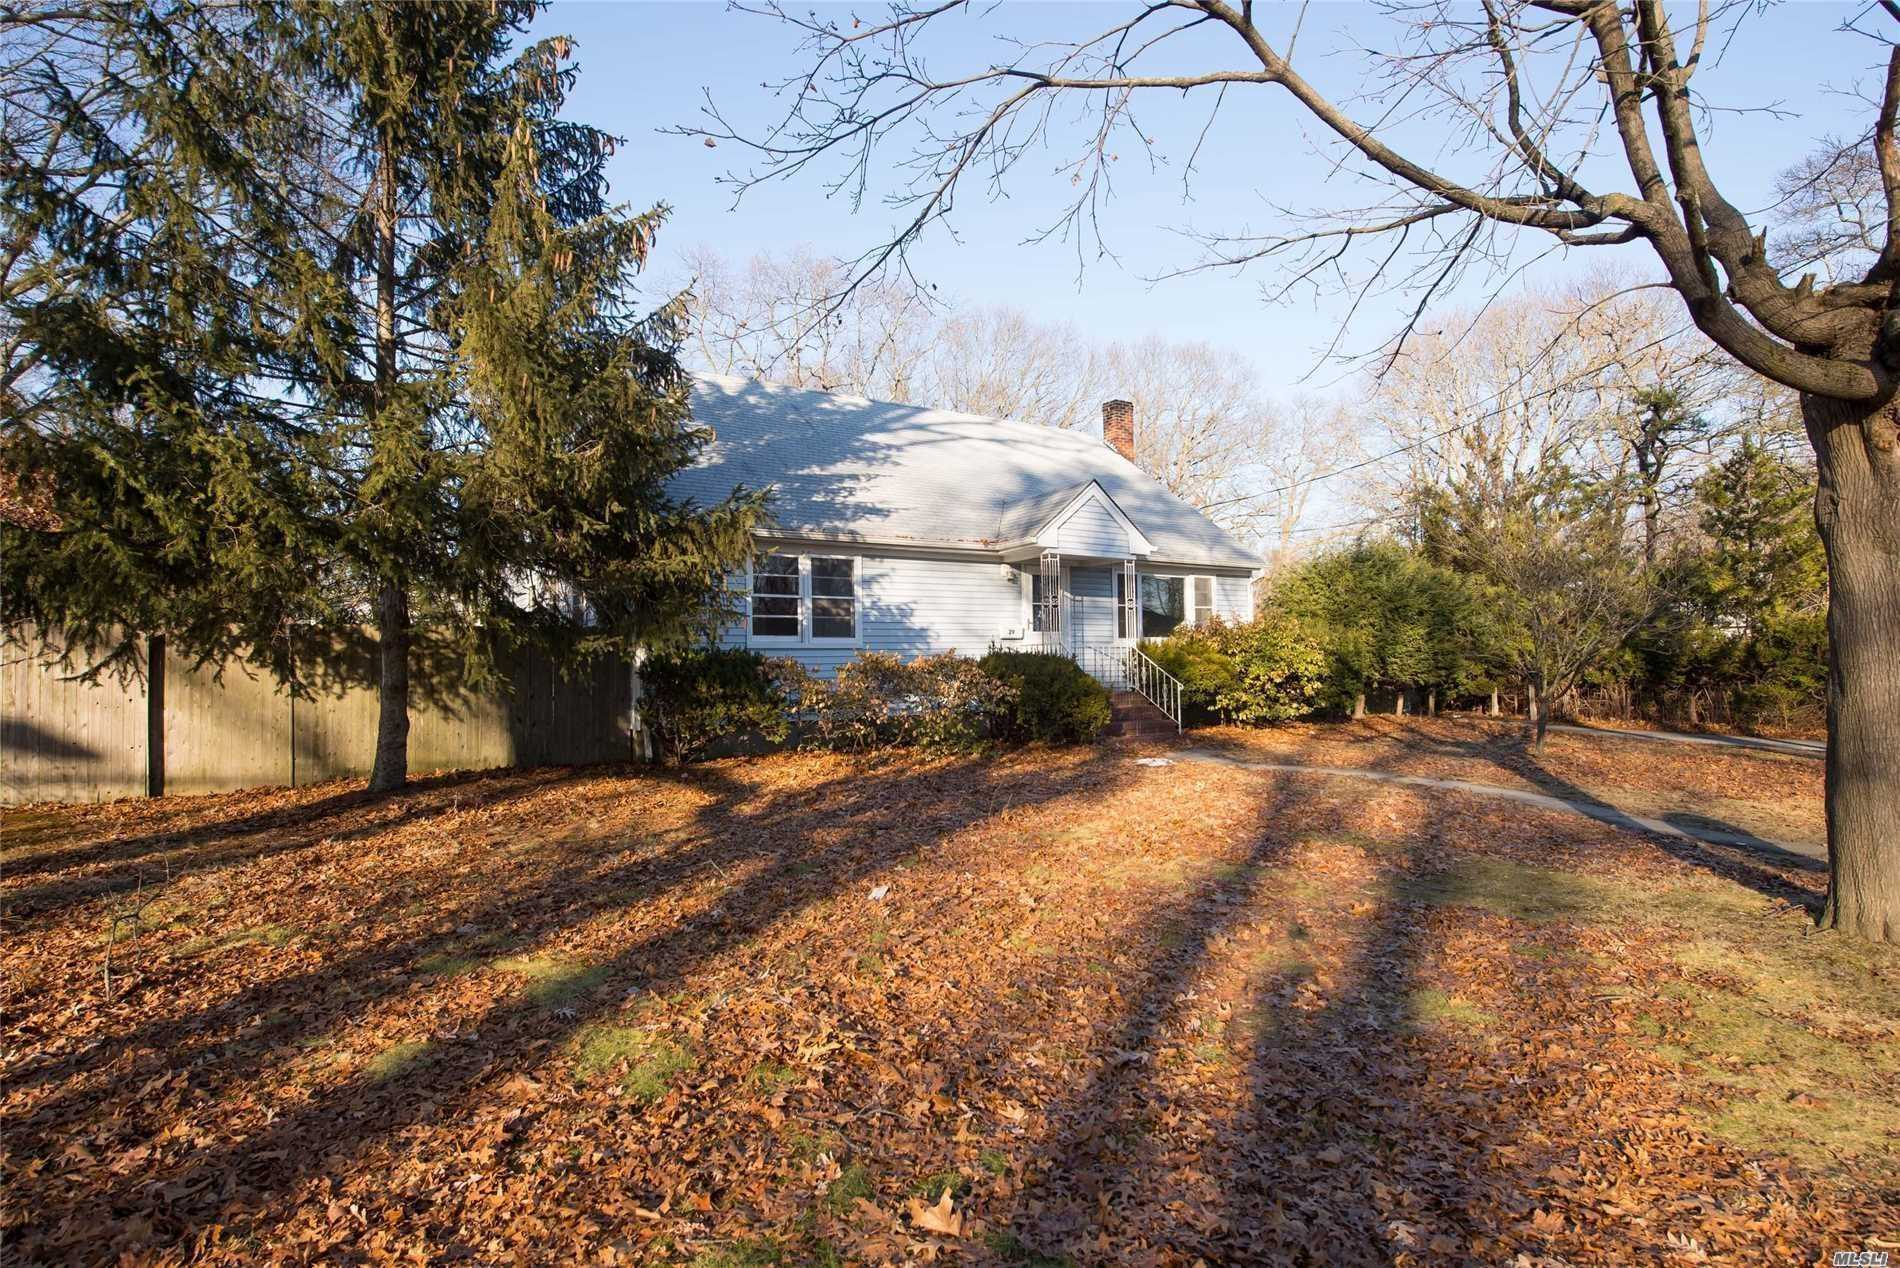 Lovely 4 Bedroom Expanded Cape. Large Living Room, Formal Dining Room, Eik, 1.5 Baths & 2 Bedrooms On Main Floor. Oak Floors, 2 Large Bedrooms Upstairs With A Lot Of Storage. Full Finished Basement With Outside Entrance, Home Has Oil Heat & 200 Amp Electric. East Islip Star Rebate $1, 225